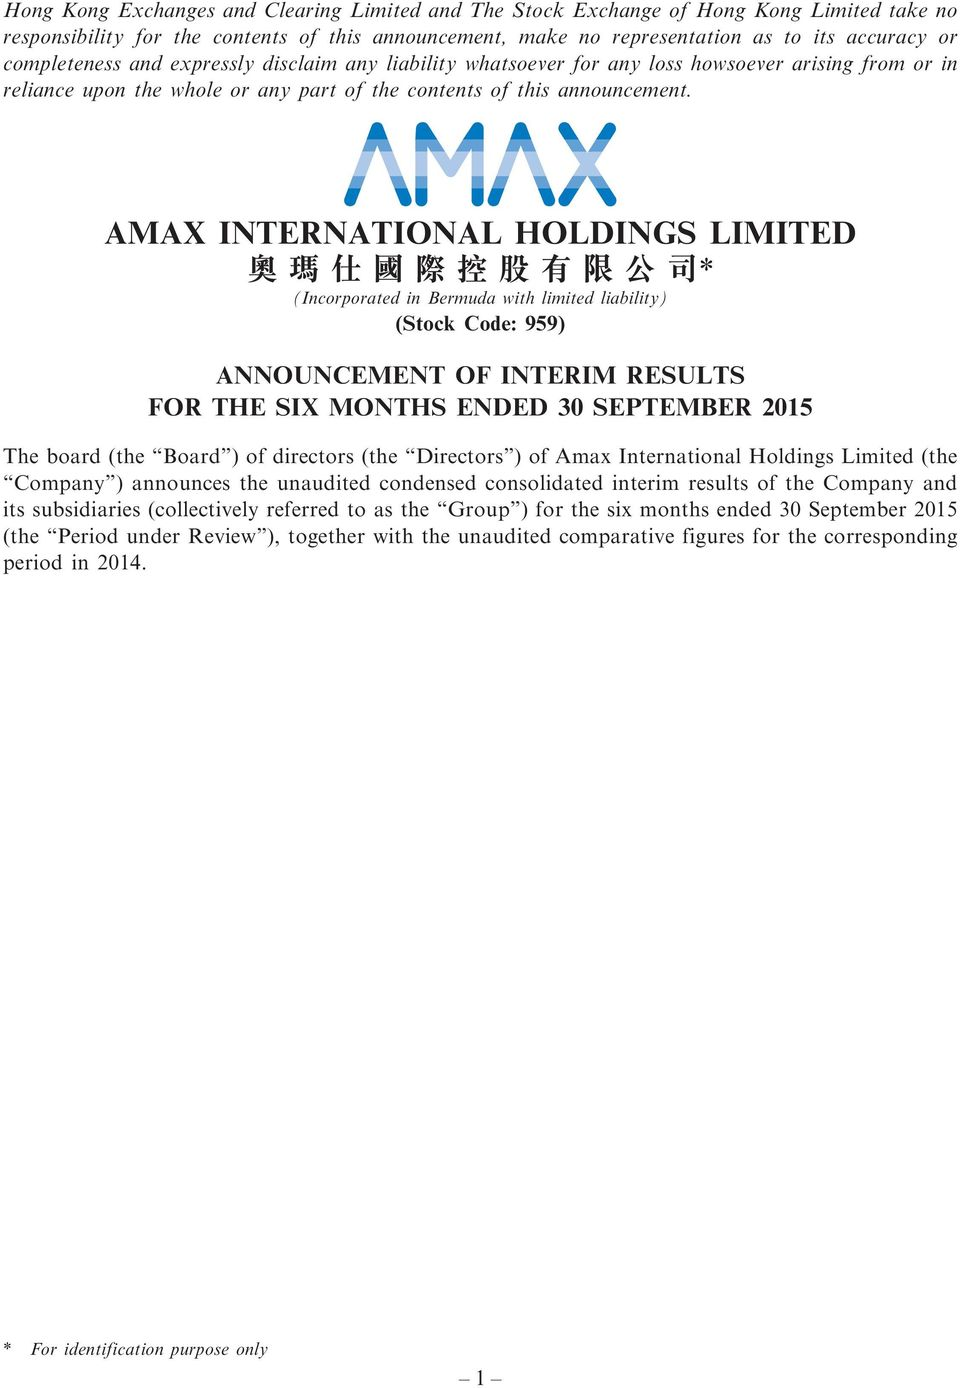 AMAX INTERNATIONAL HOLDINGS LIMITED 奧 瑪 仕 國 際 控 股 有 限 公 司 * (Incorporated in Bermuda with limited liability) (Stock Code: 959) ANNOUNCEMENT OF INTERIM RESULTS FOR THE SIX MONTHS ENDED 30 SEPTEMBER